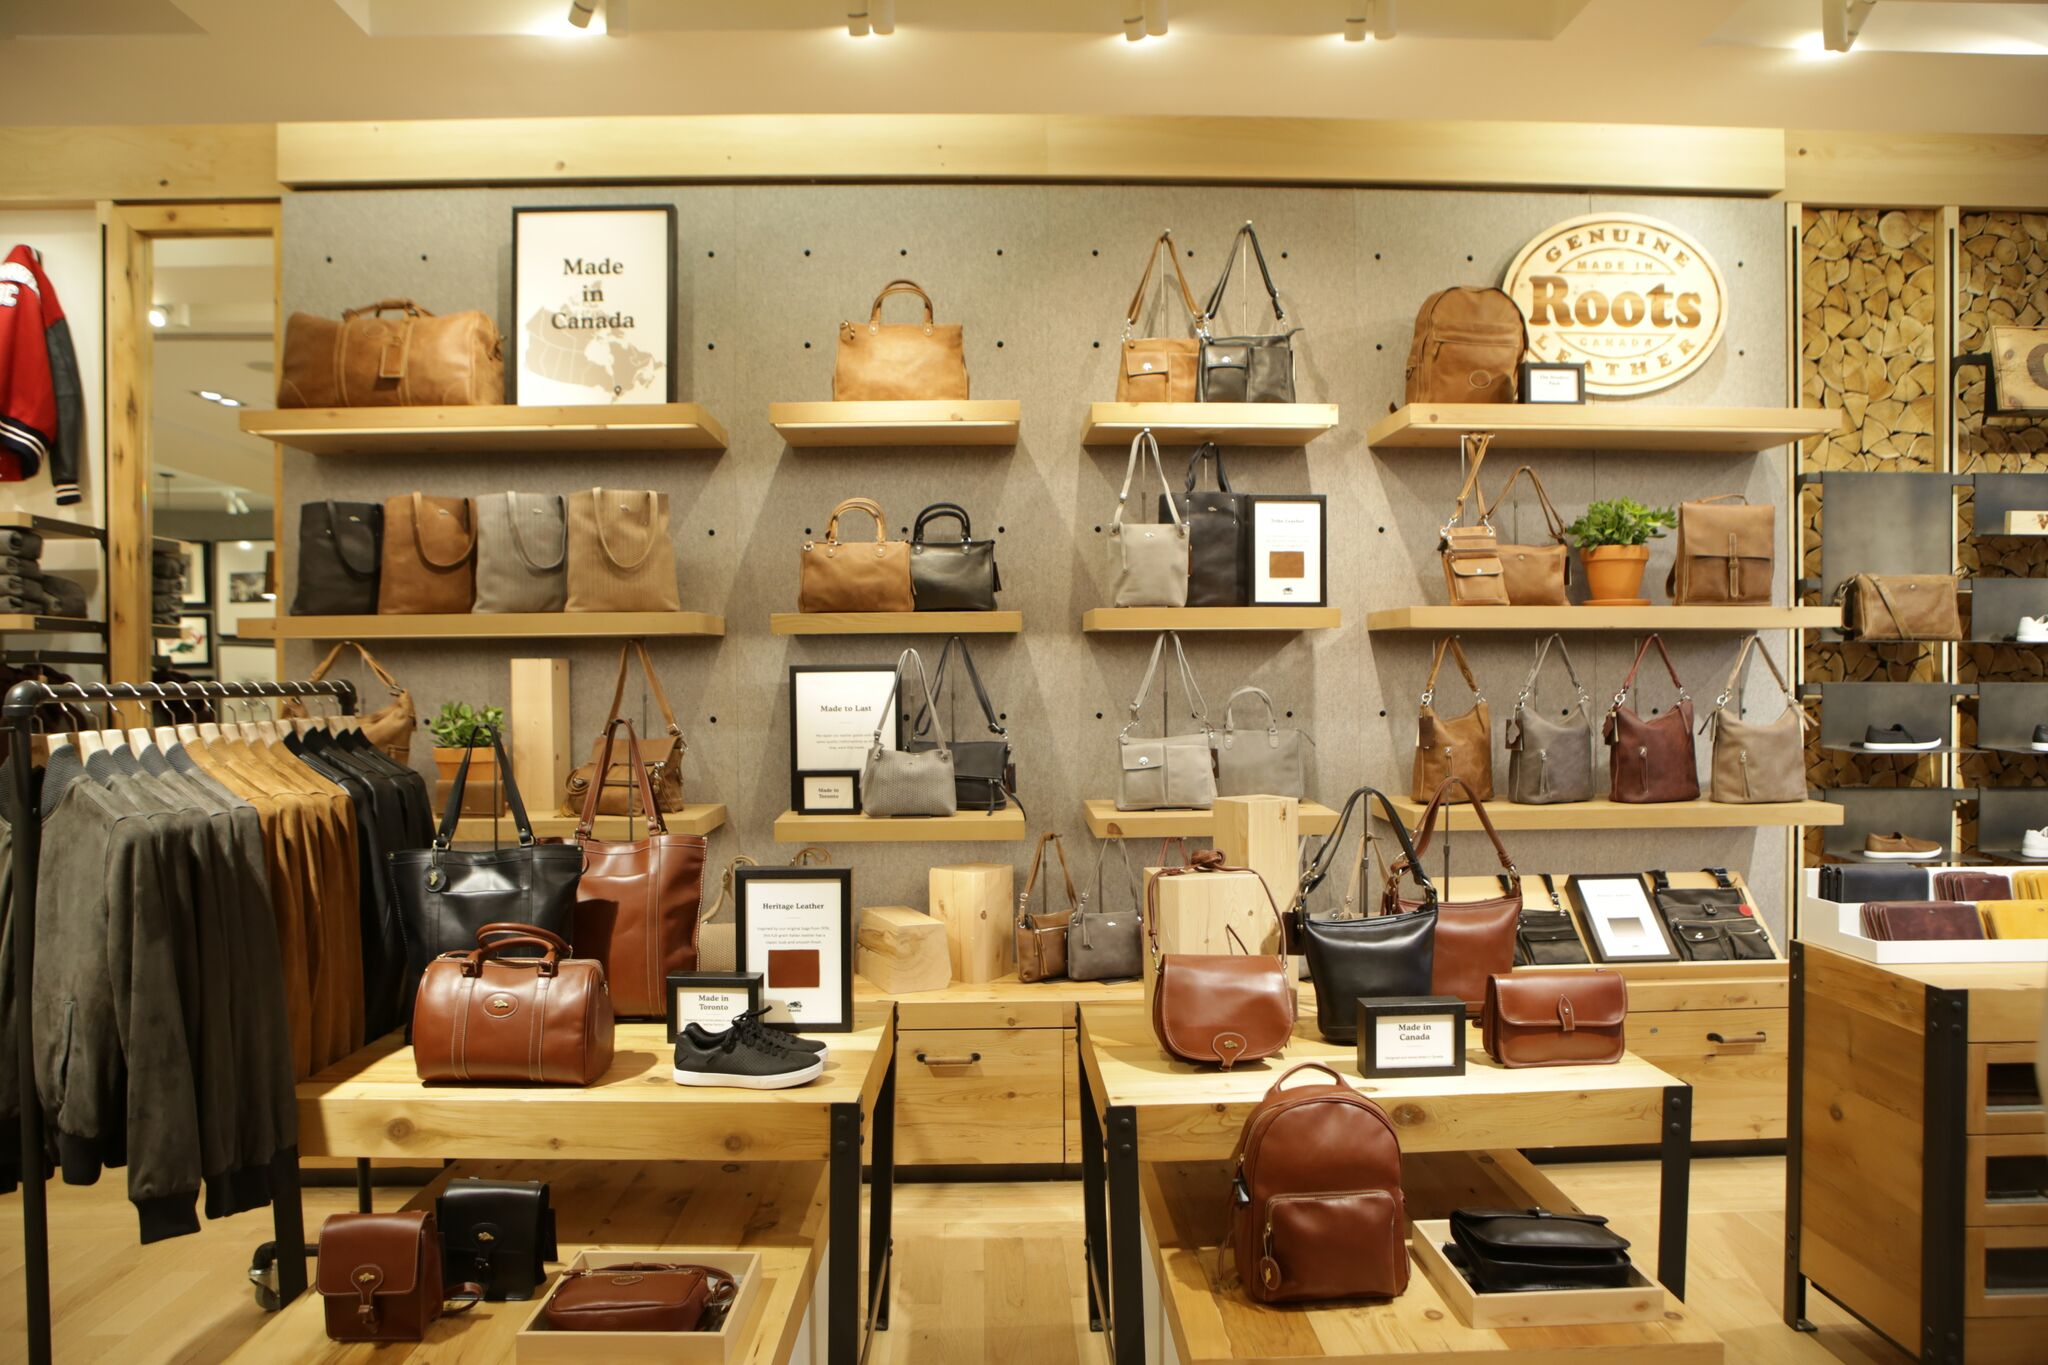 Custom, handmade leather bags, including the top-seller Banff Bag, are just a few reasons why Roots is known worldwide. (Image: Courtesy Roots)